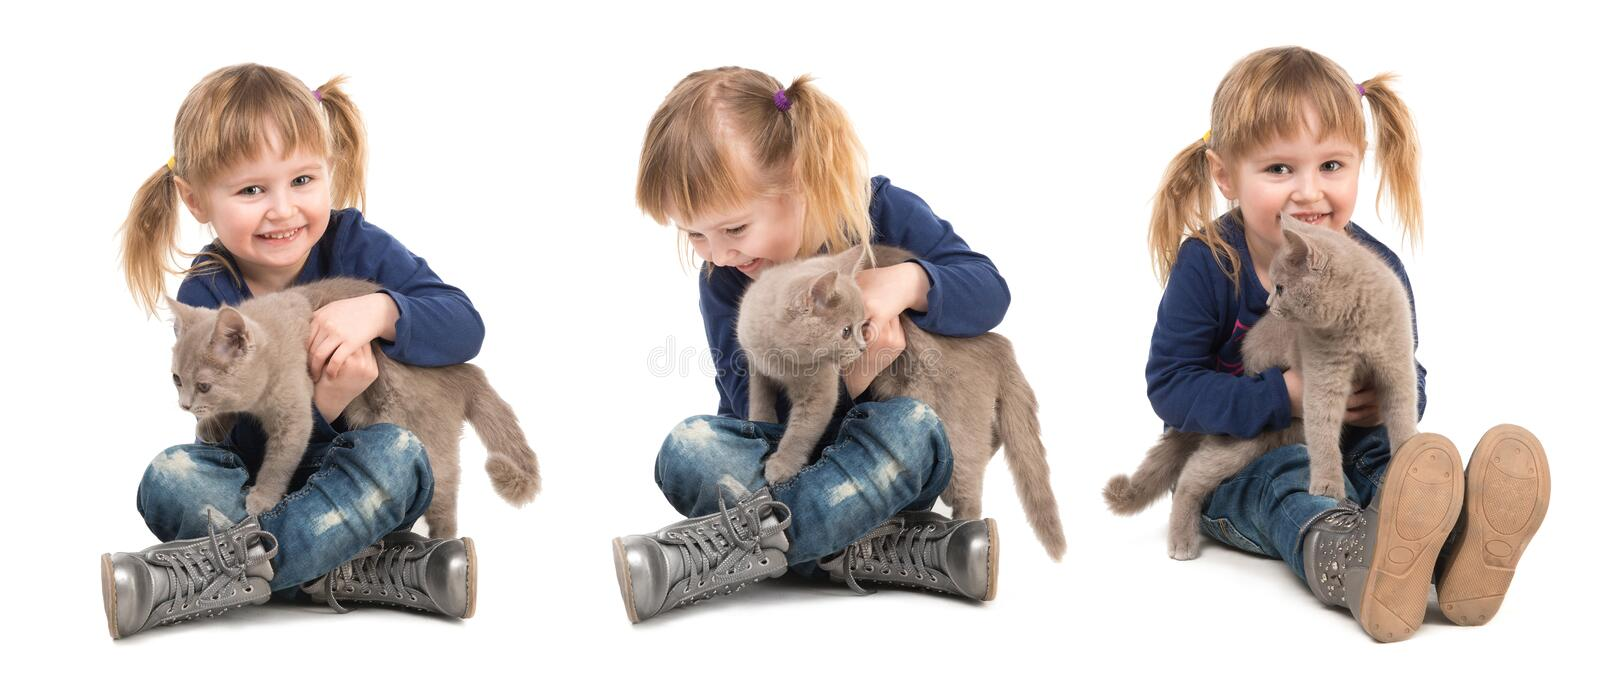 Cute little girl with cat in hands. Cute little girl sitting on the floor with cat in hands isolated on white background royalty free stock photography